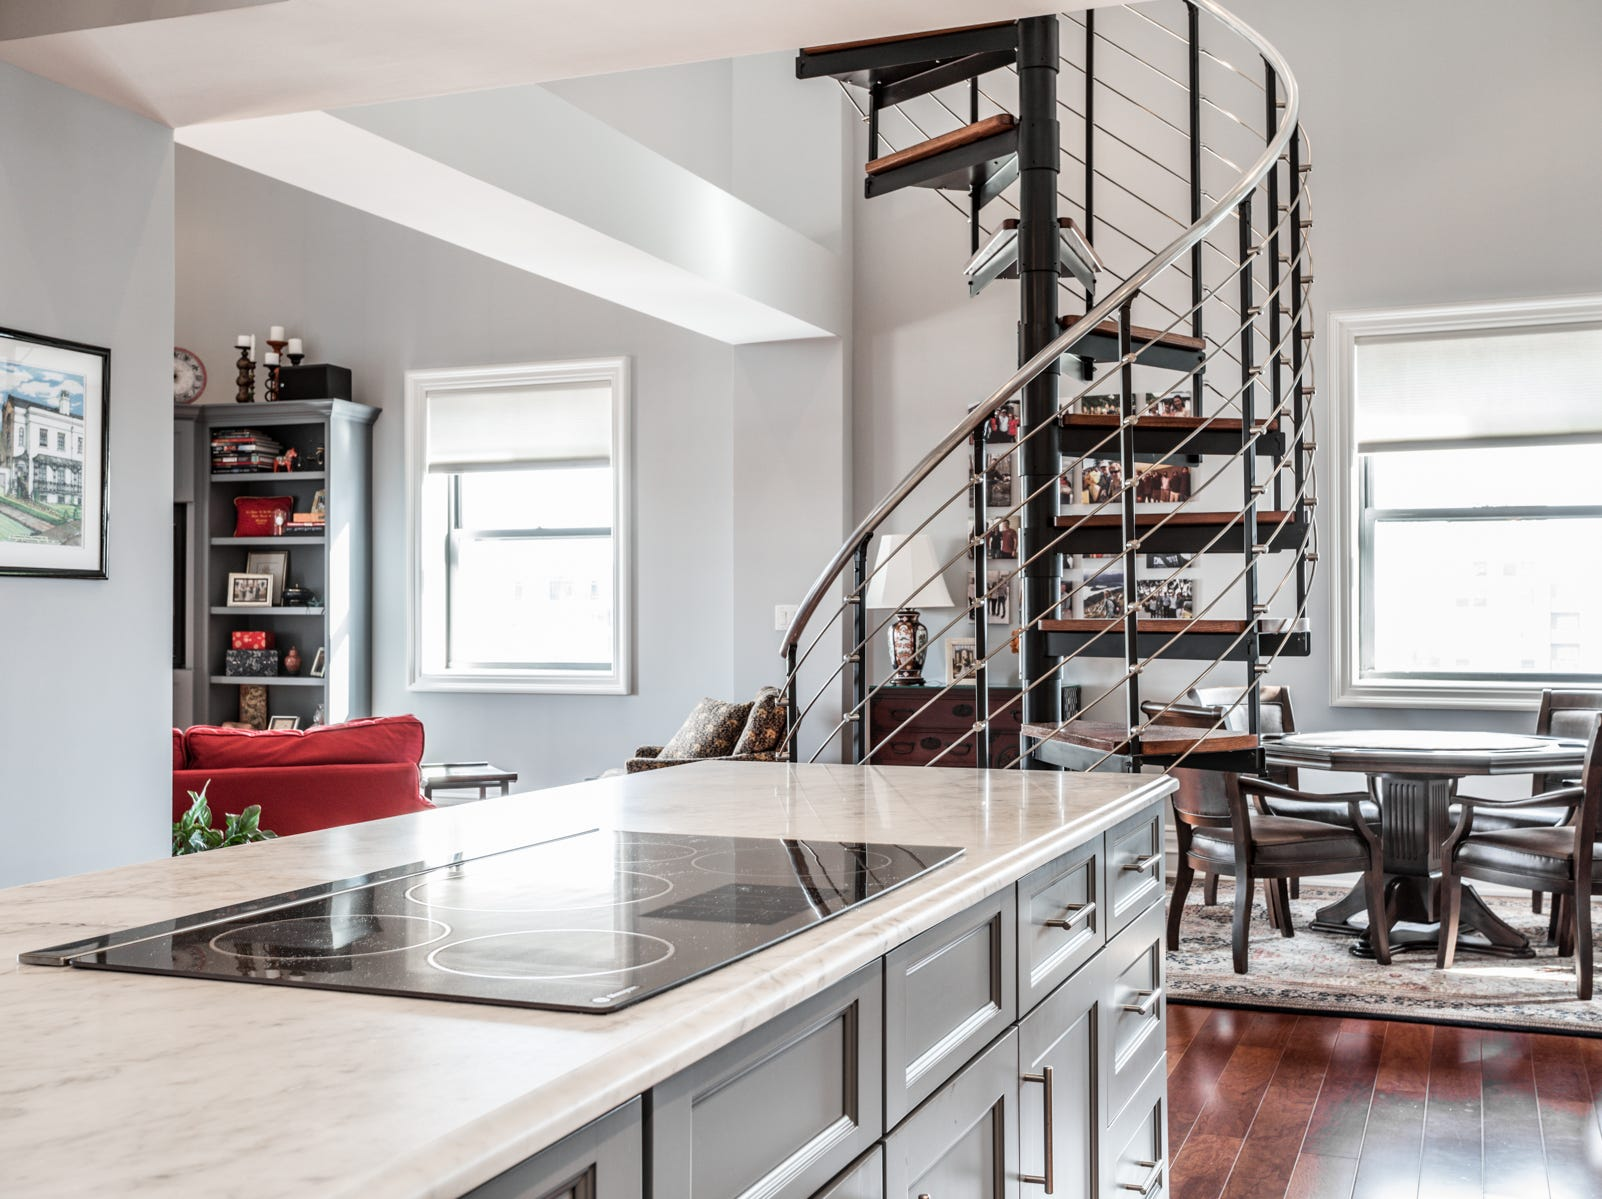 The spiral staircase leads to a loft and storage space.